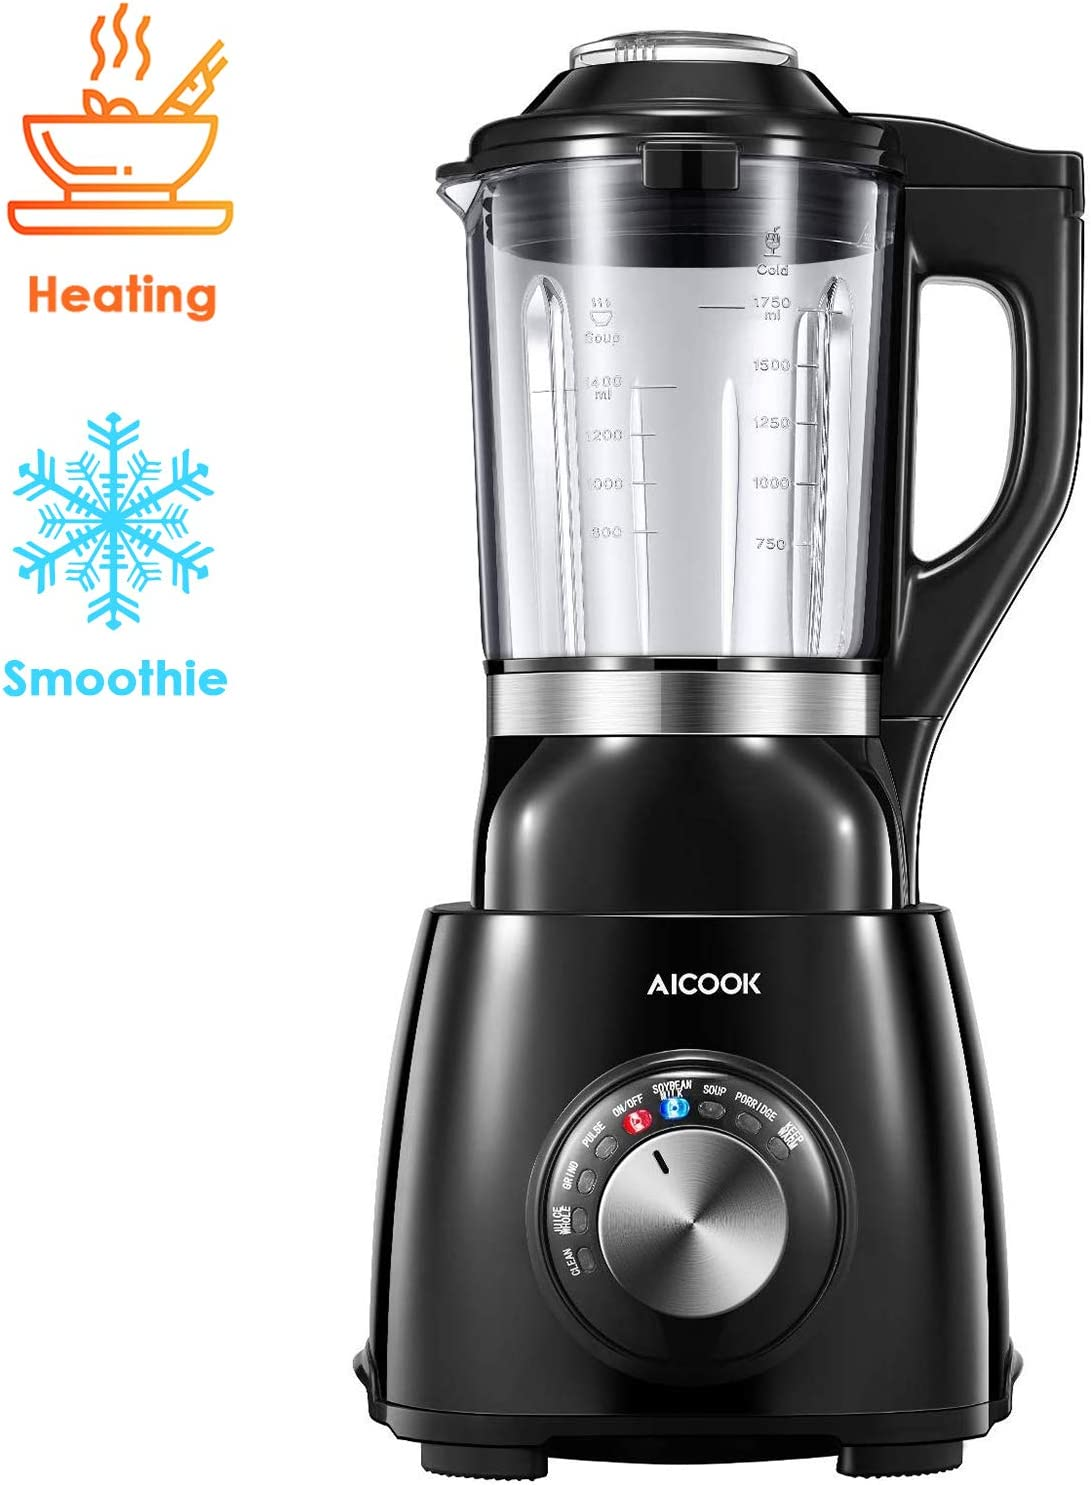 AICOOK Blender, Cold & Hot Cook Hot Soups, Sauces and Dips Professoinal Blender with 1400 Peak Watts to Crush Frozen Drinks & Smoothies Nonstick Glass Pitcher (HB152), 60 oz